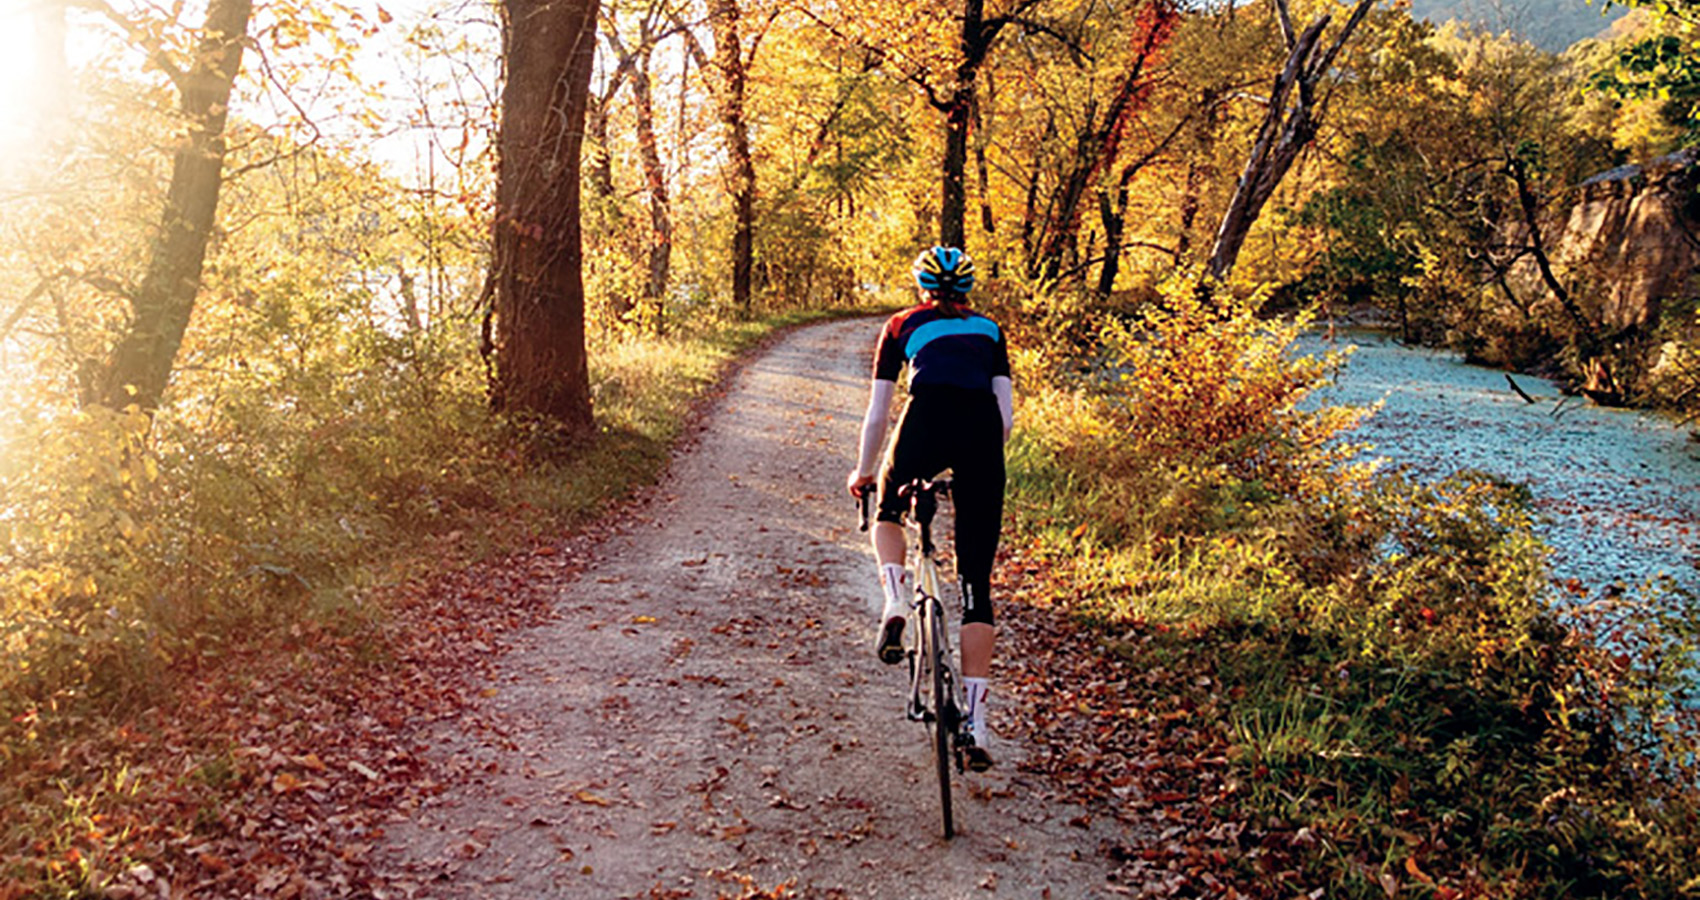 solo rider on a leaf-speckled path by a srteam on a New England autumn morning